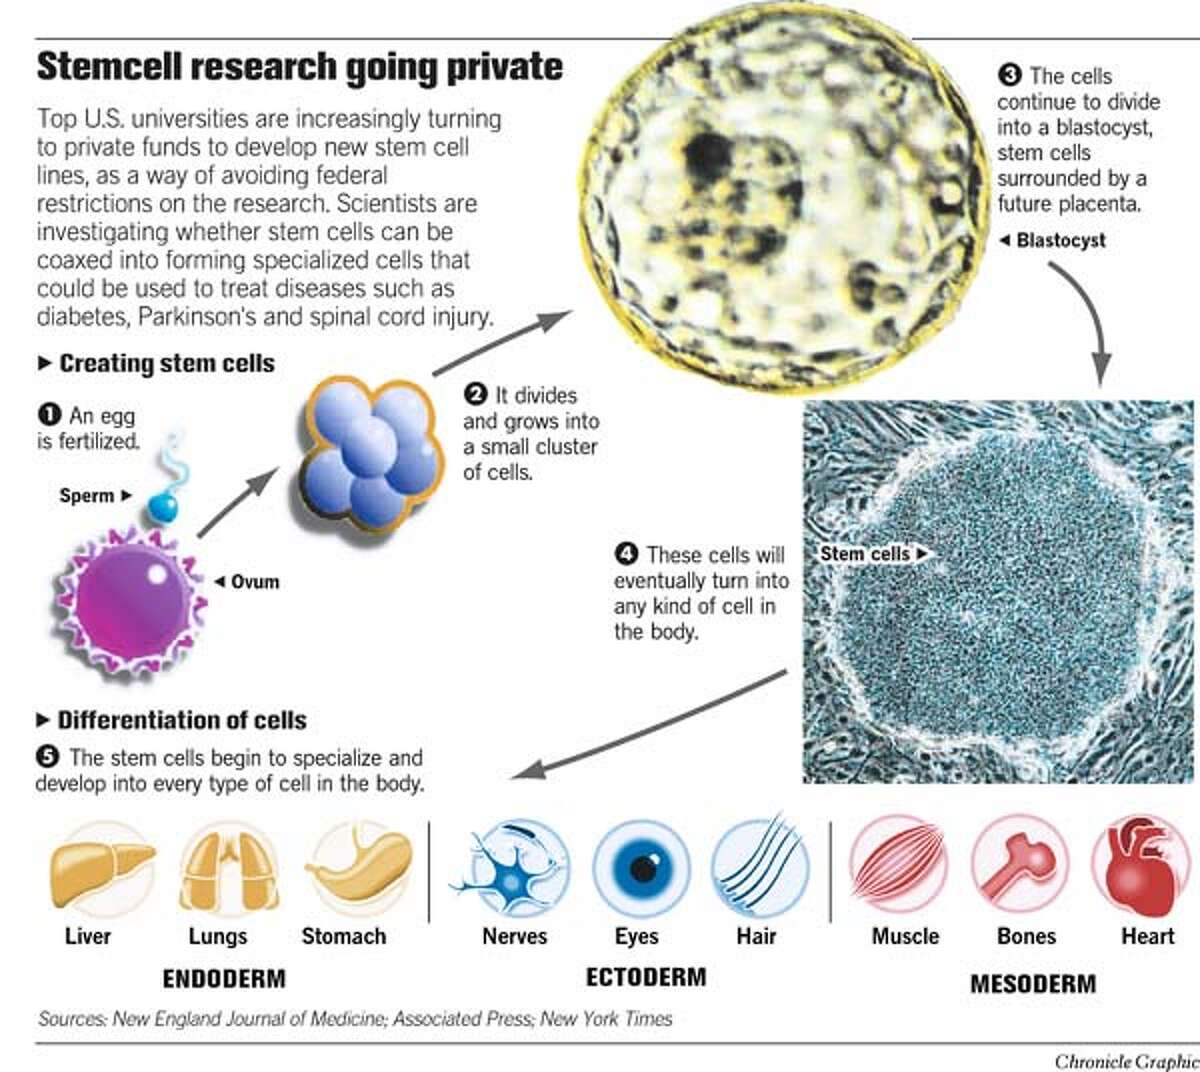 Stemcell Research Going Private. Chronicle Graphic